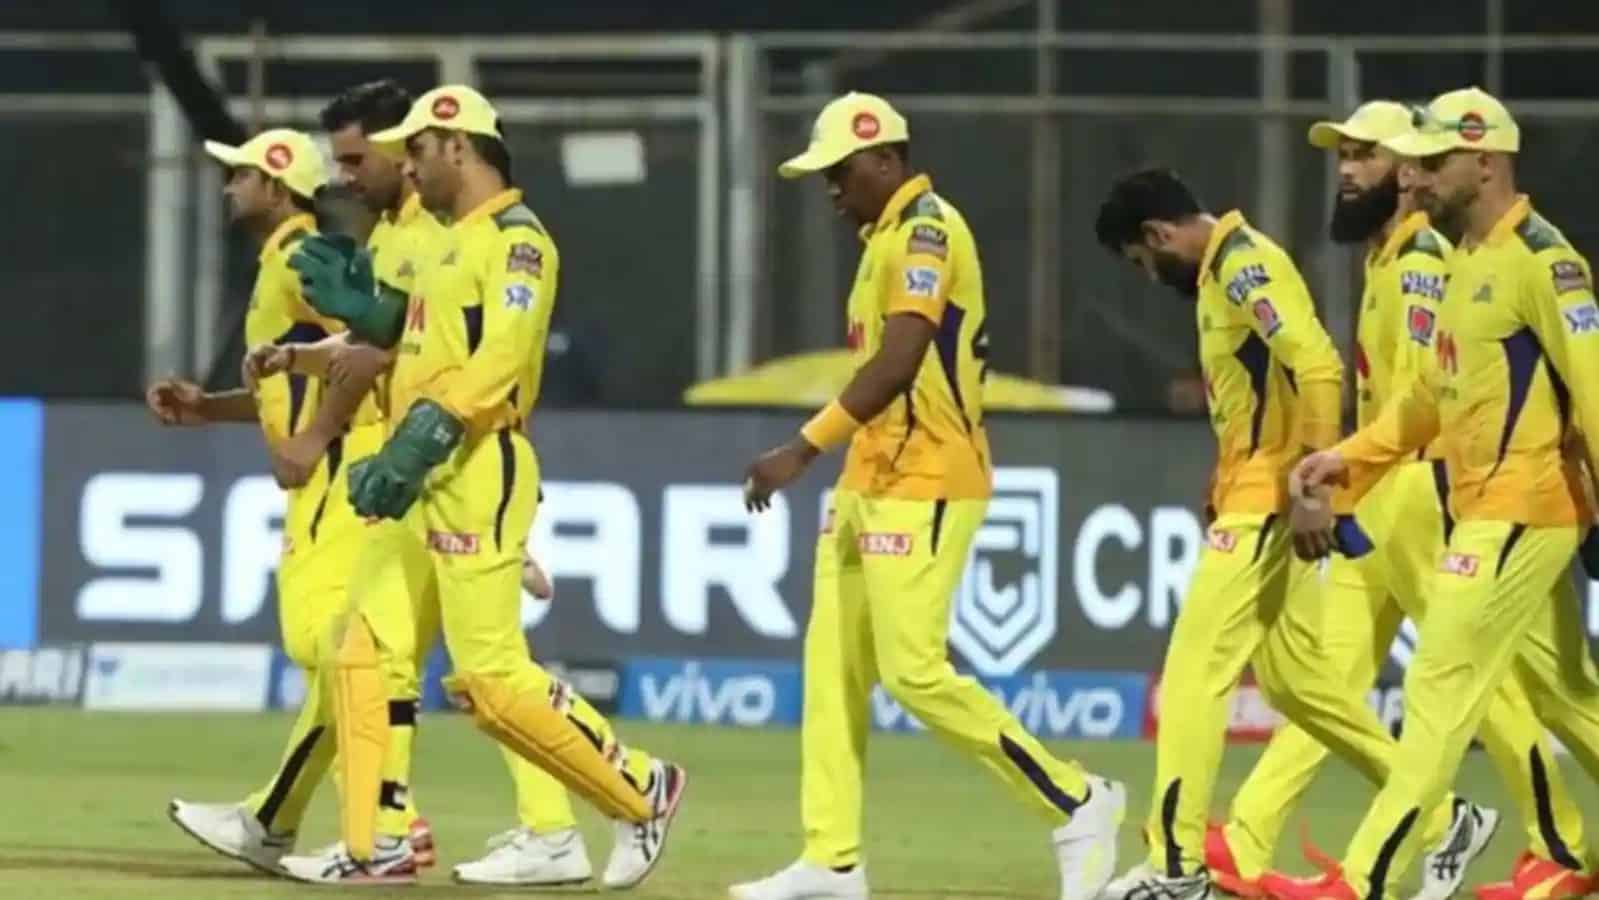 IPL 2021: Bowlers Would Have Learned Their Lessons, Says MS Dhoni After CSK's 7 Wicket Loss To DC